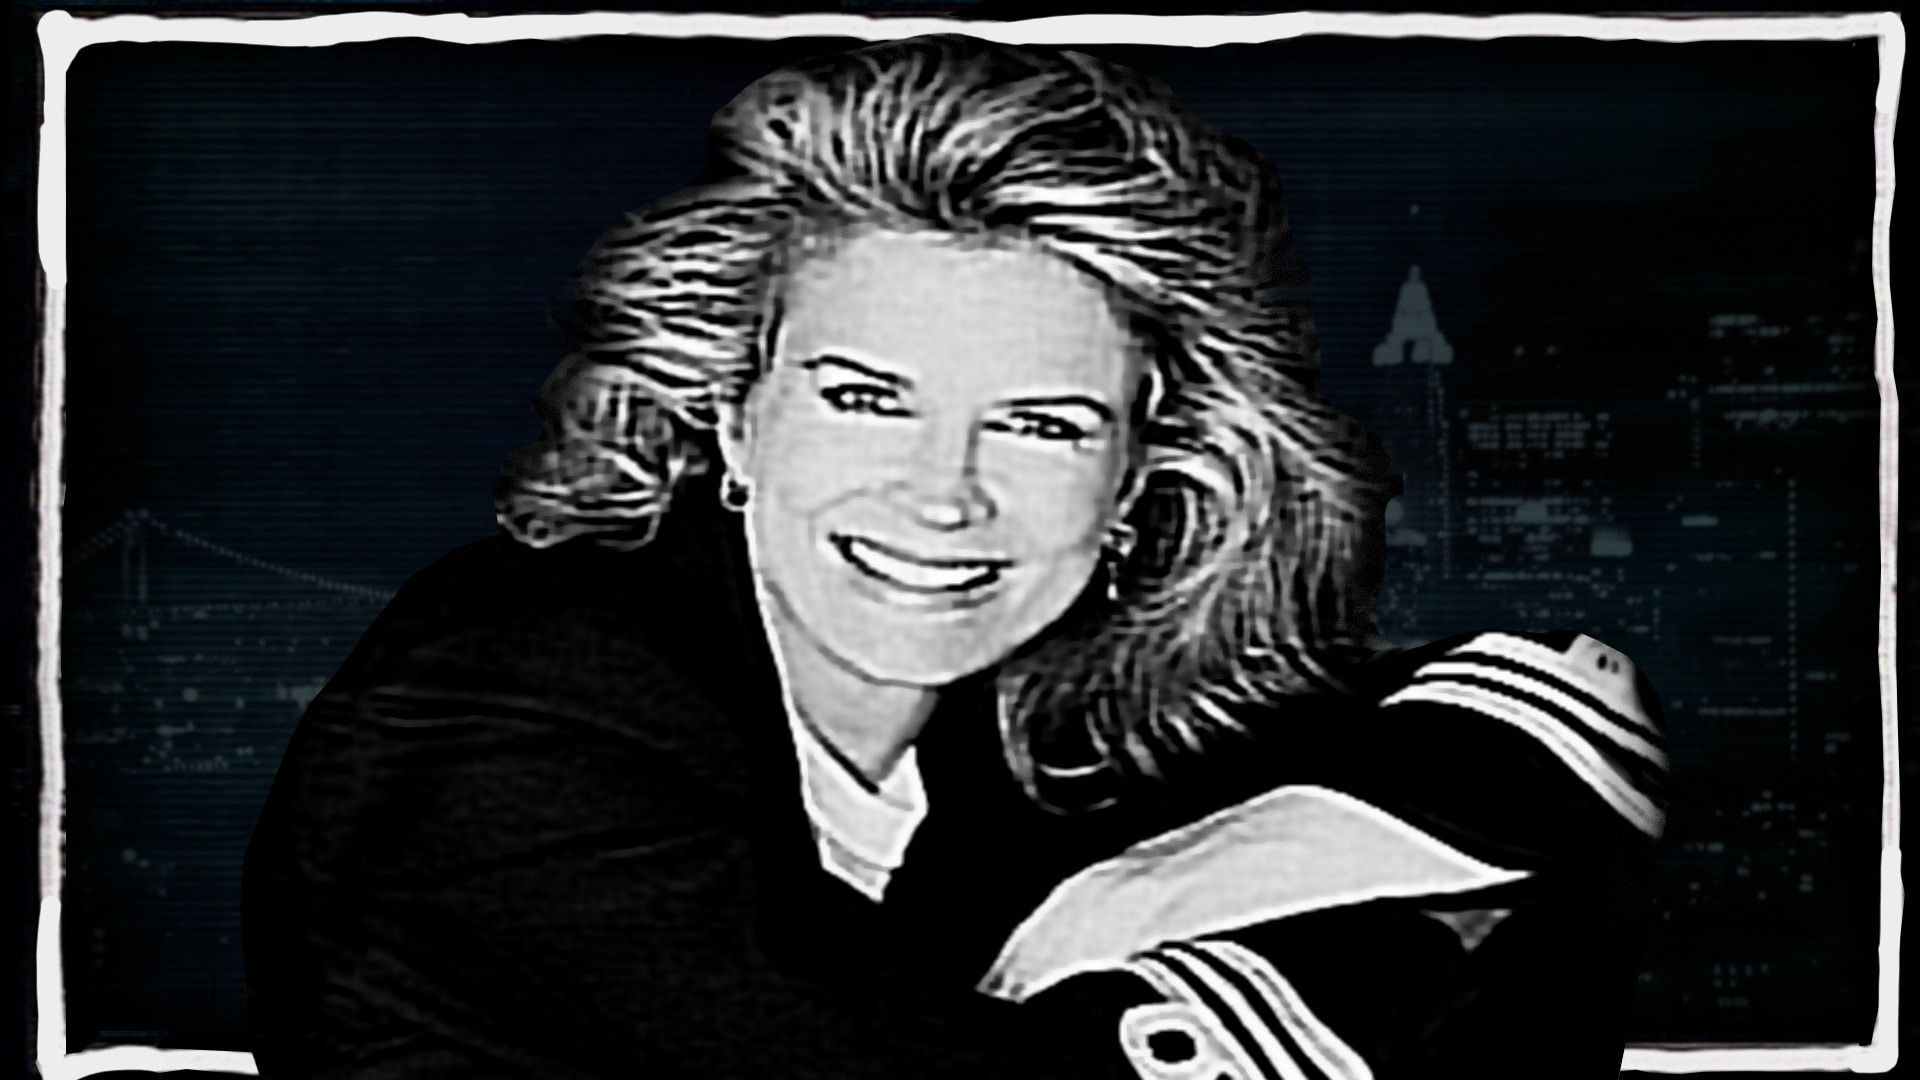 Candice Bergen: May 19, 1990